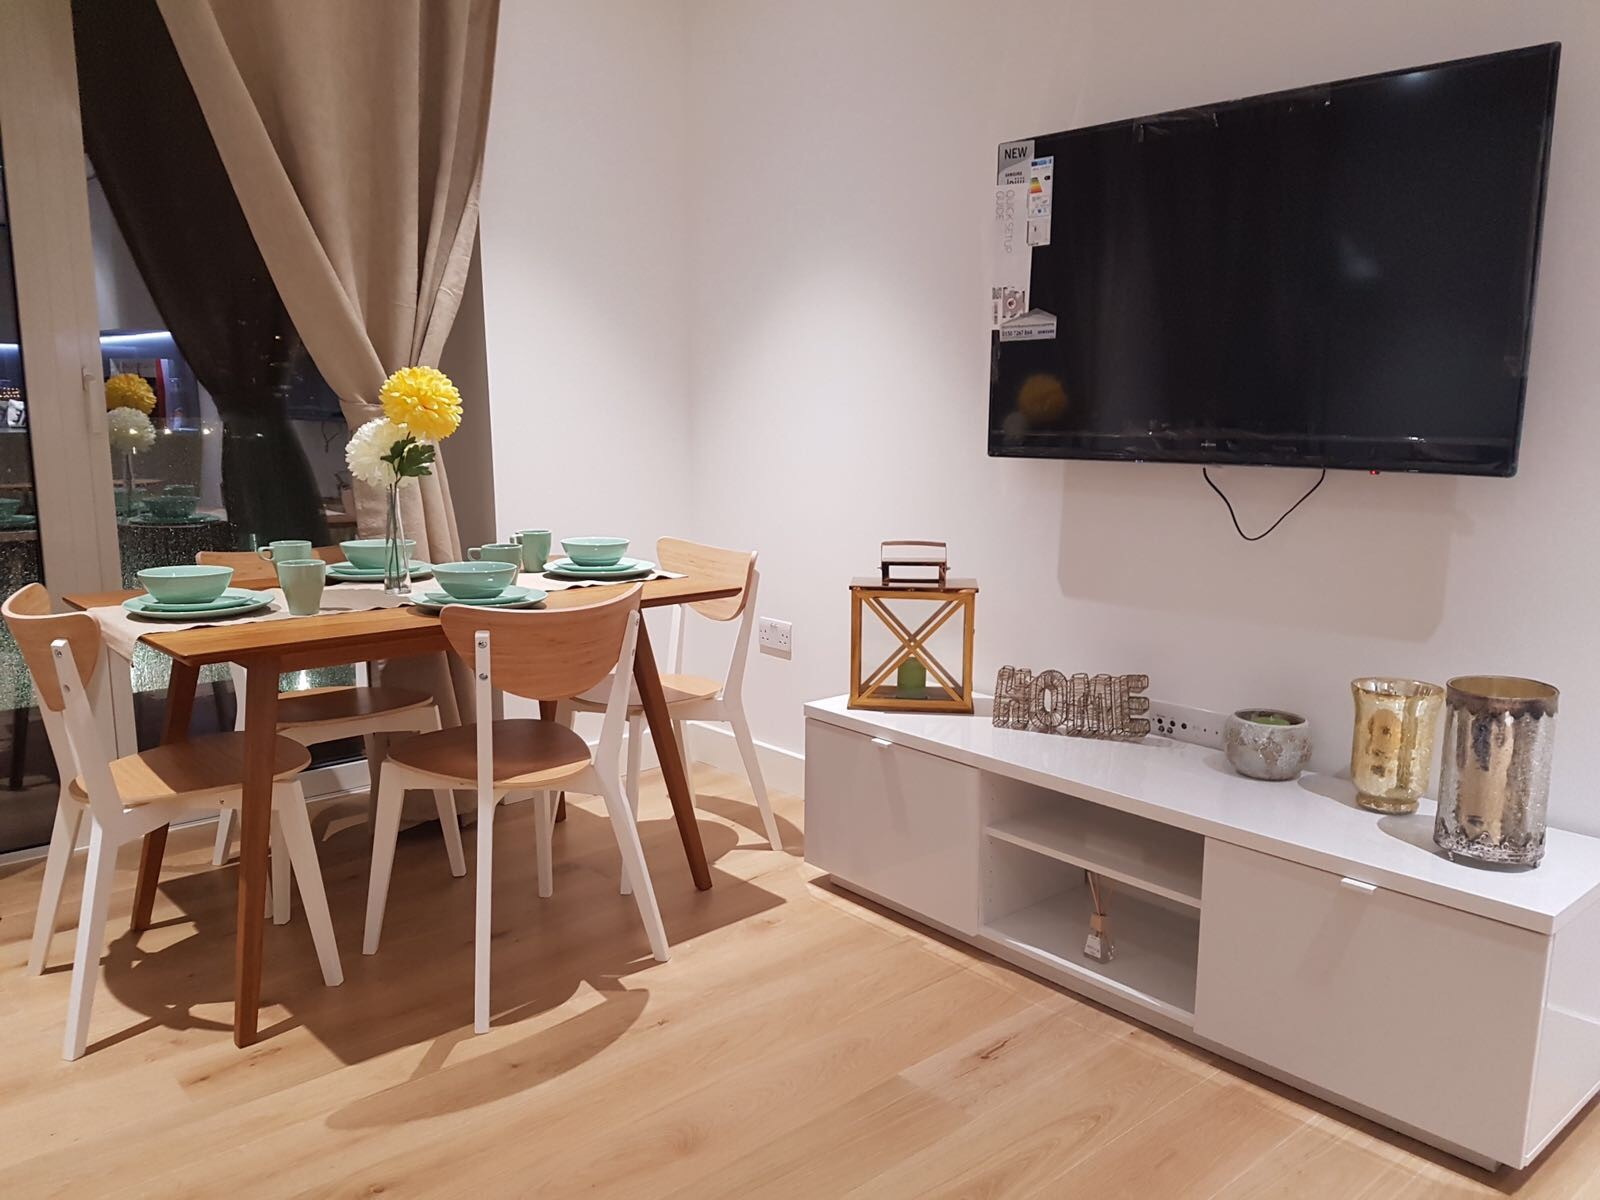 1 Bedroom Flat To Rent Aerial House London Dock London E E1 1yh